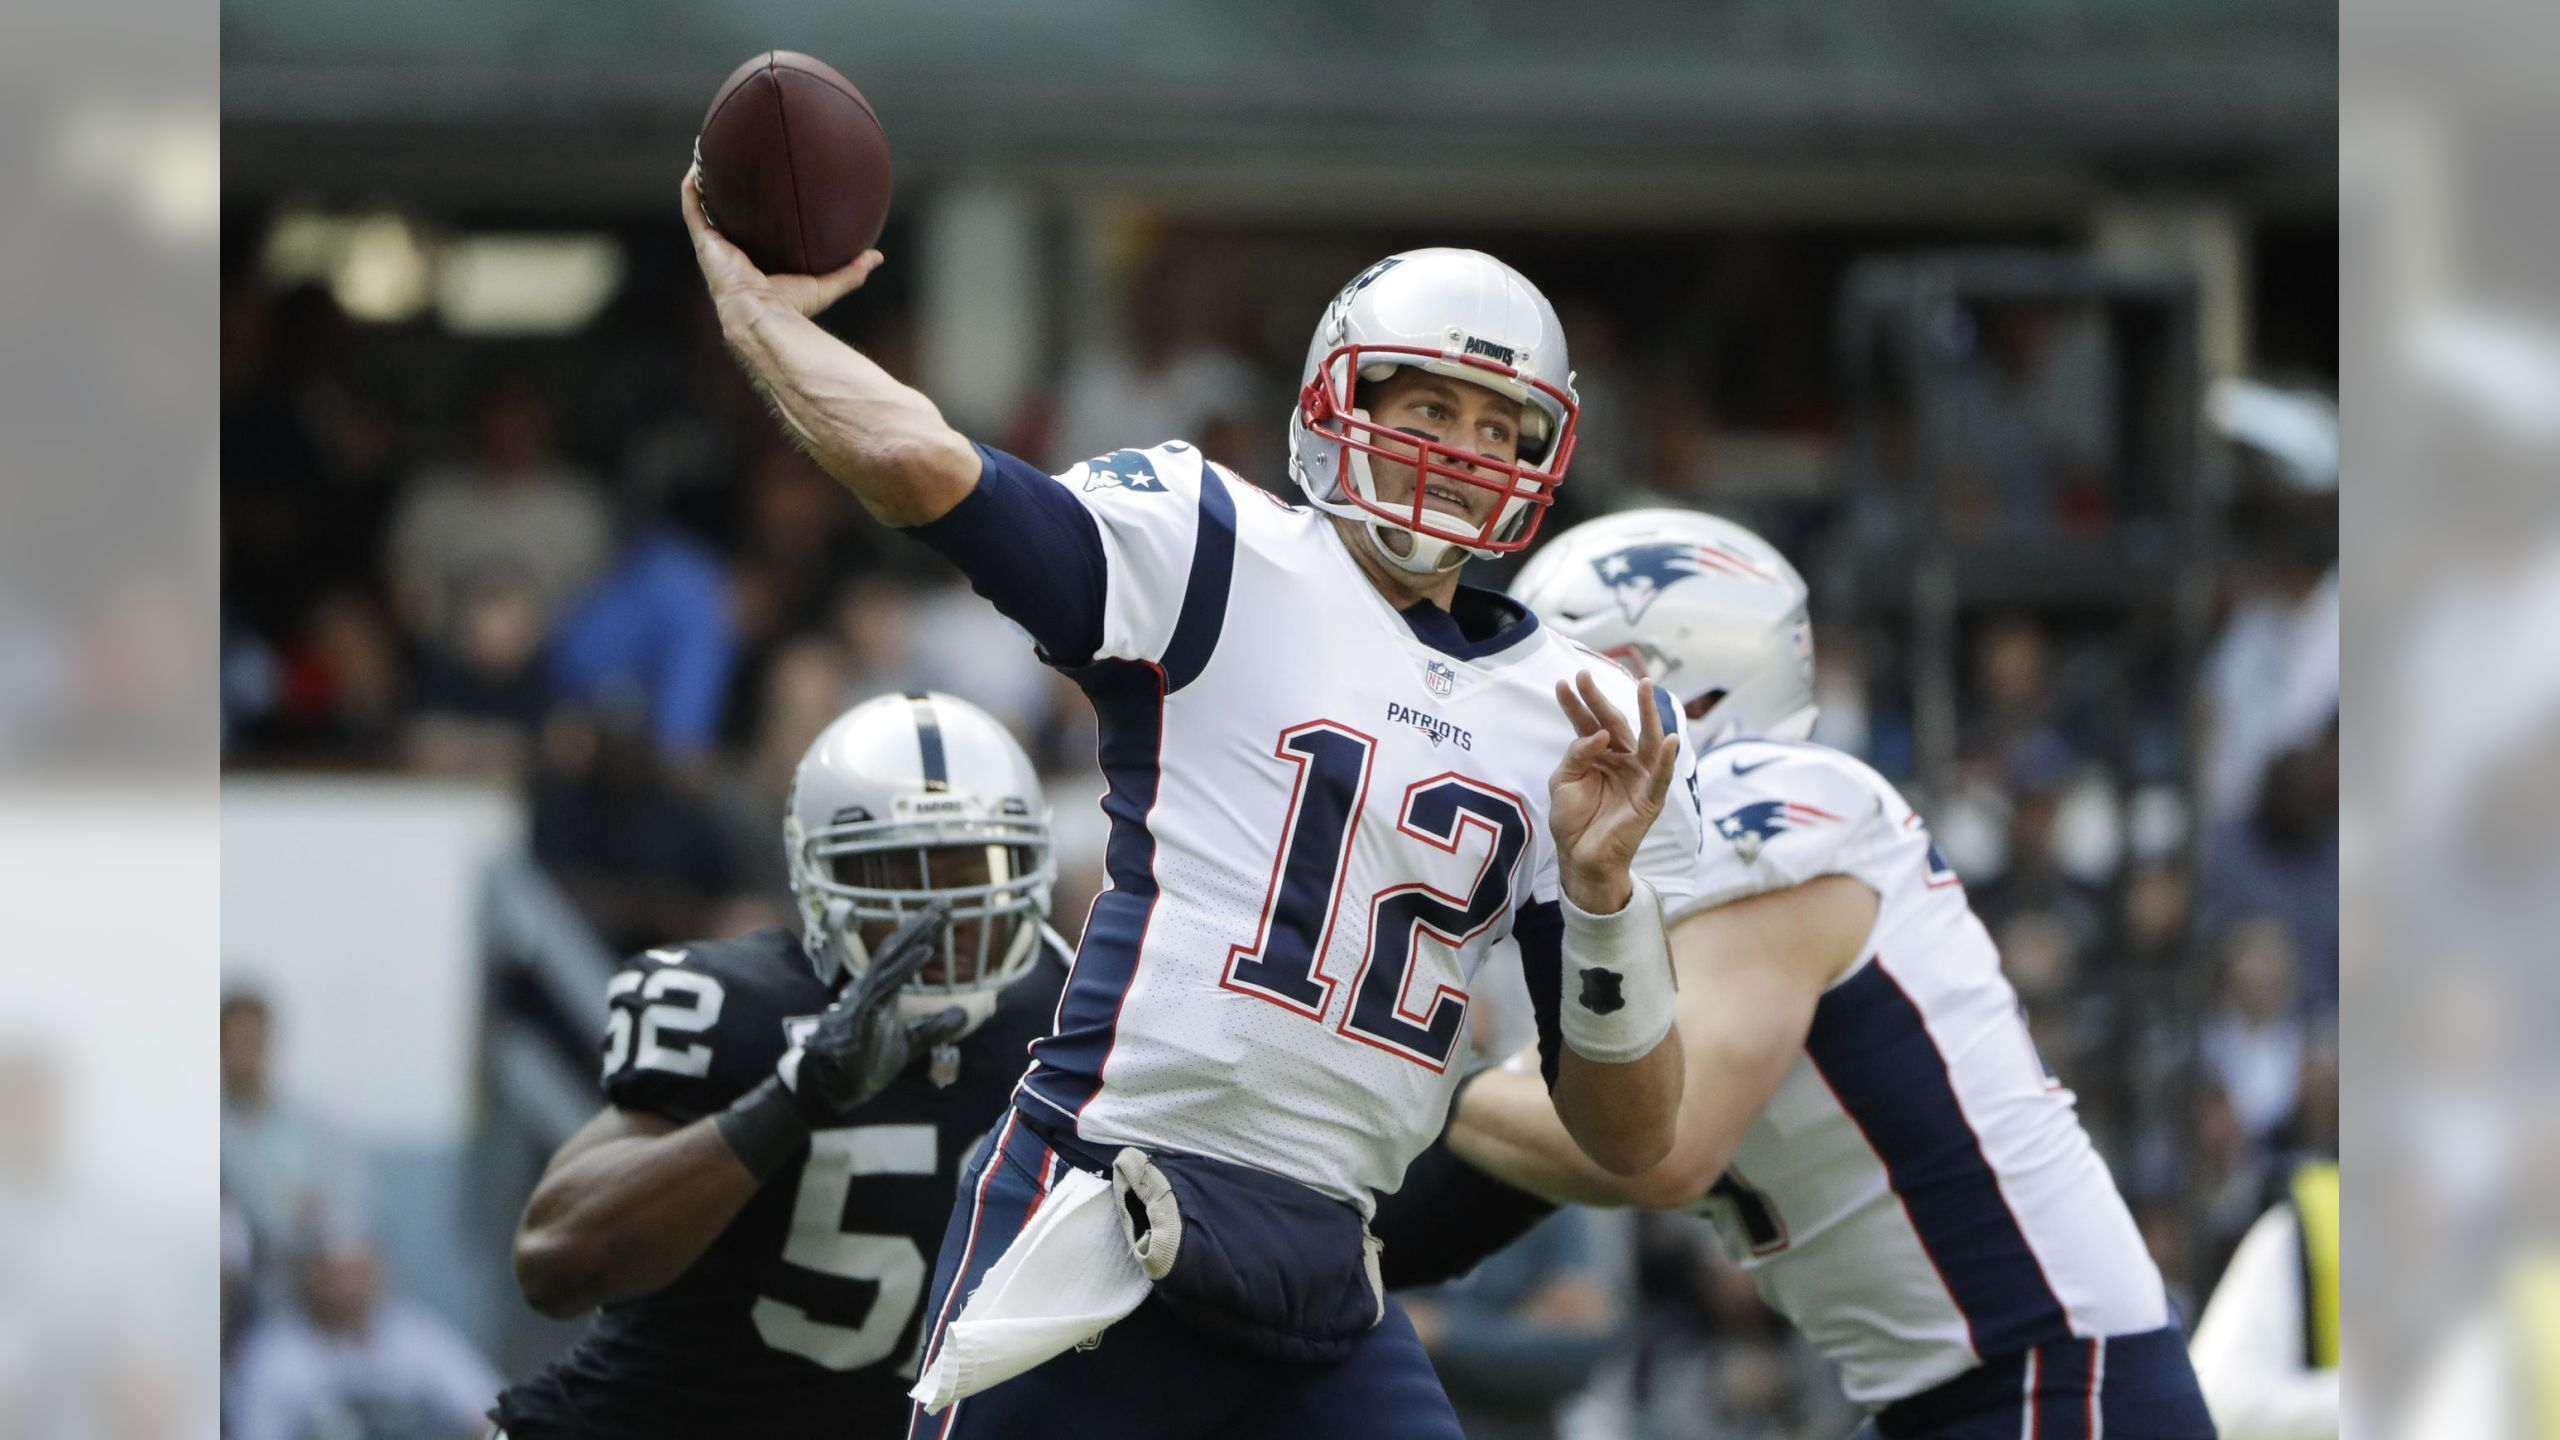 Patriots Vs Raiders Week 11 Nfl Today National Football League Nfl News